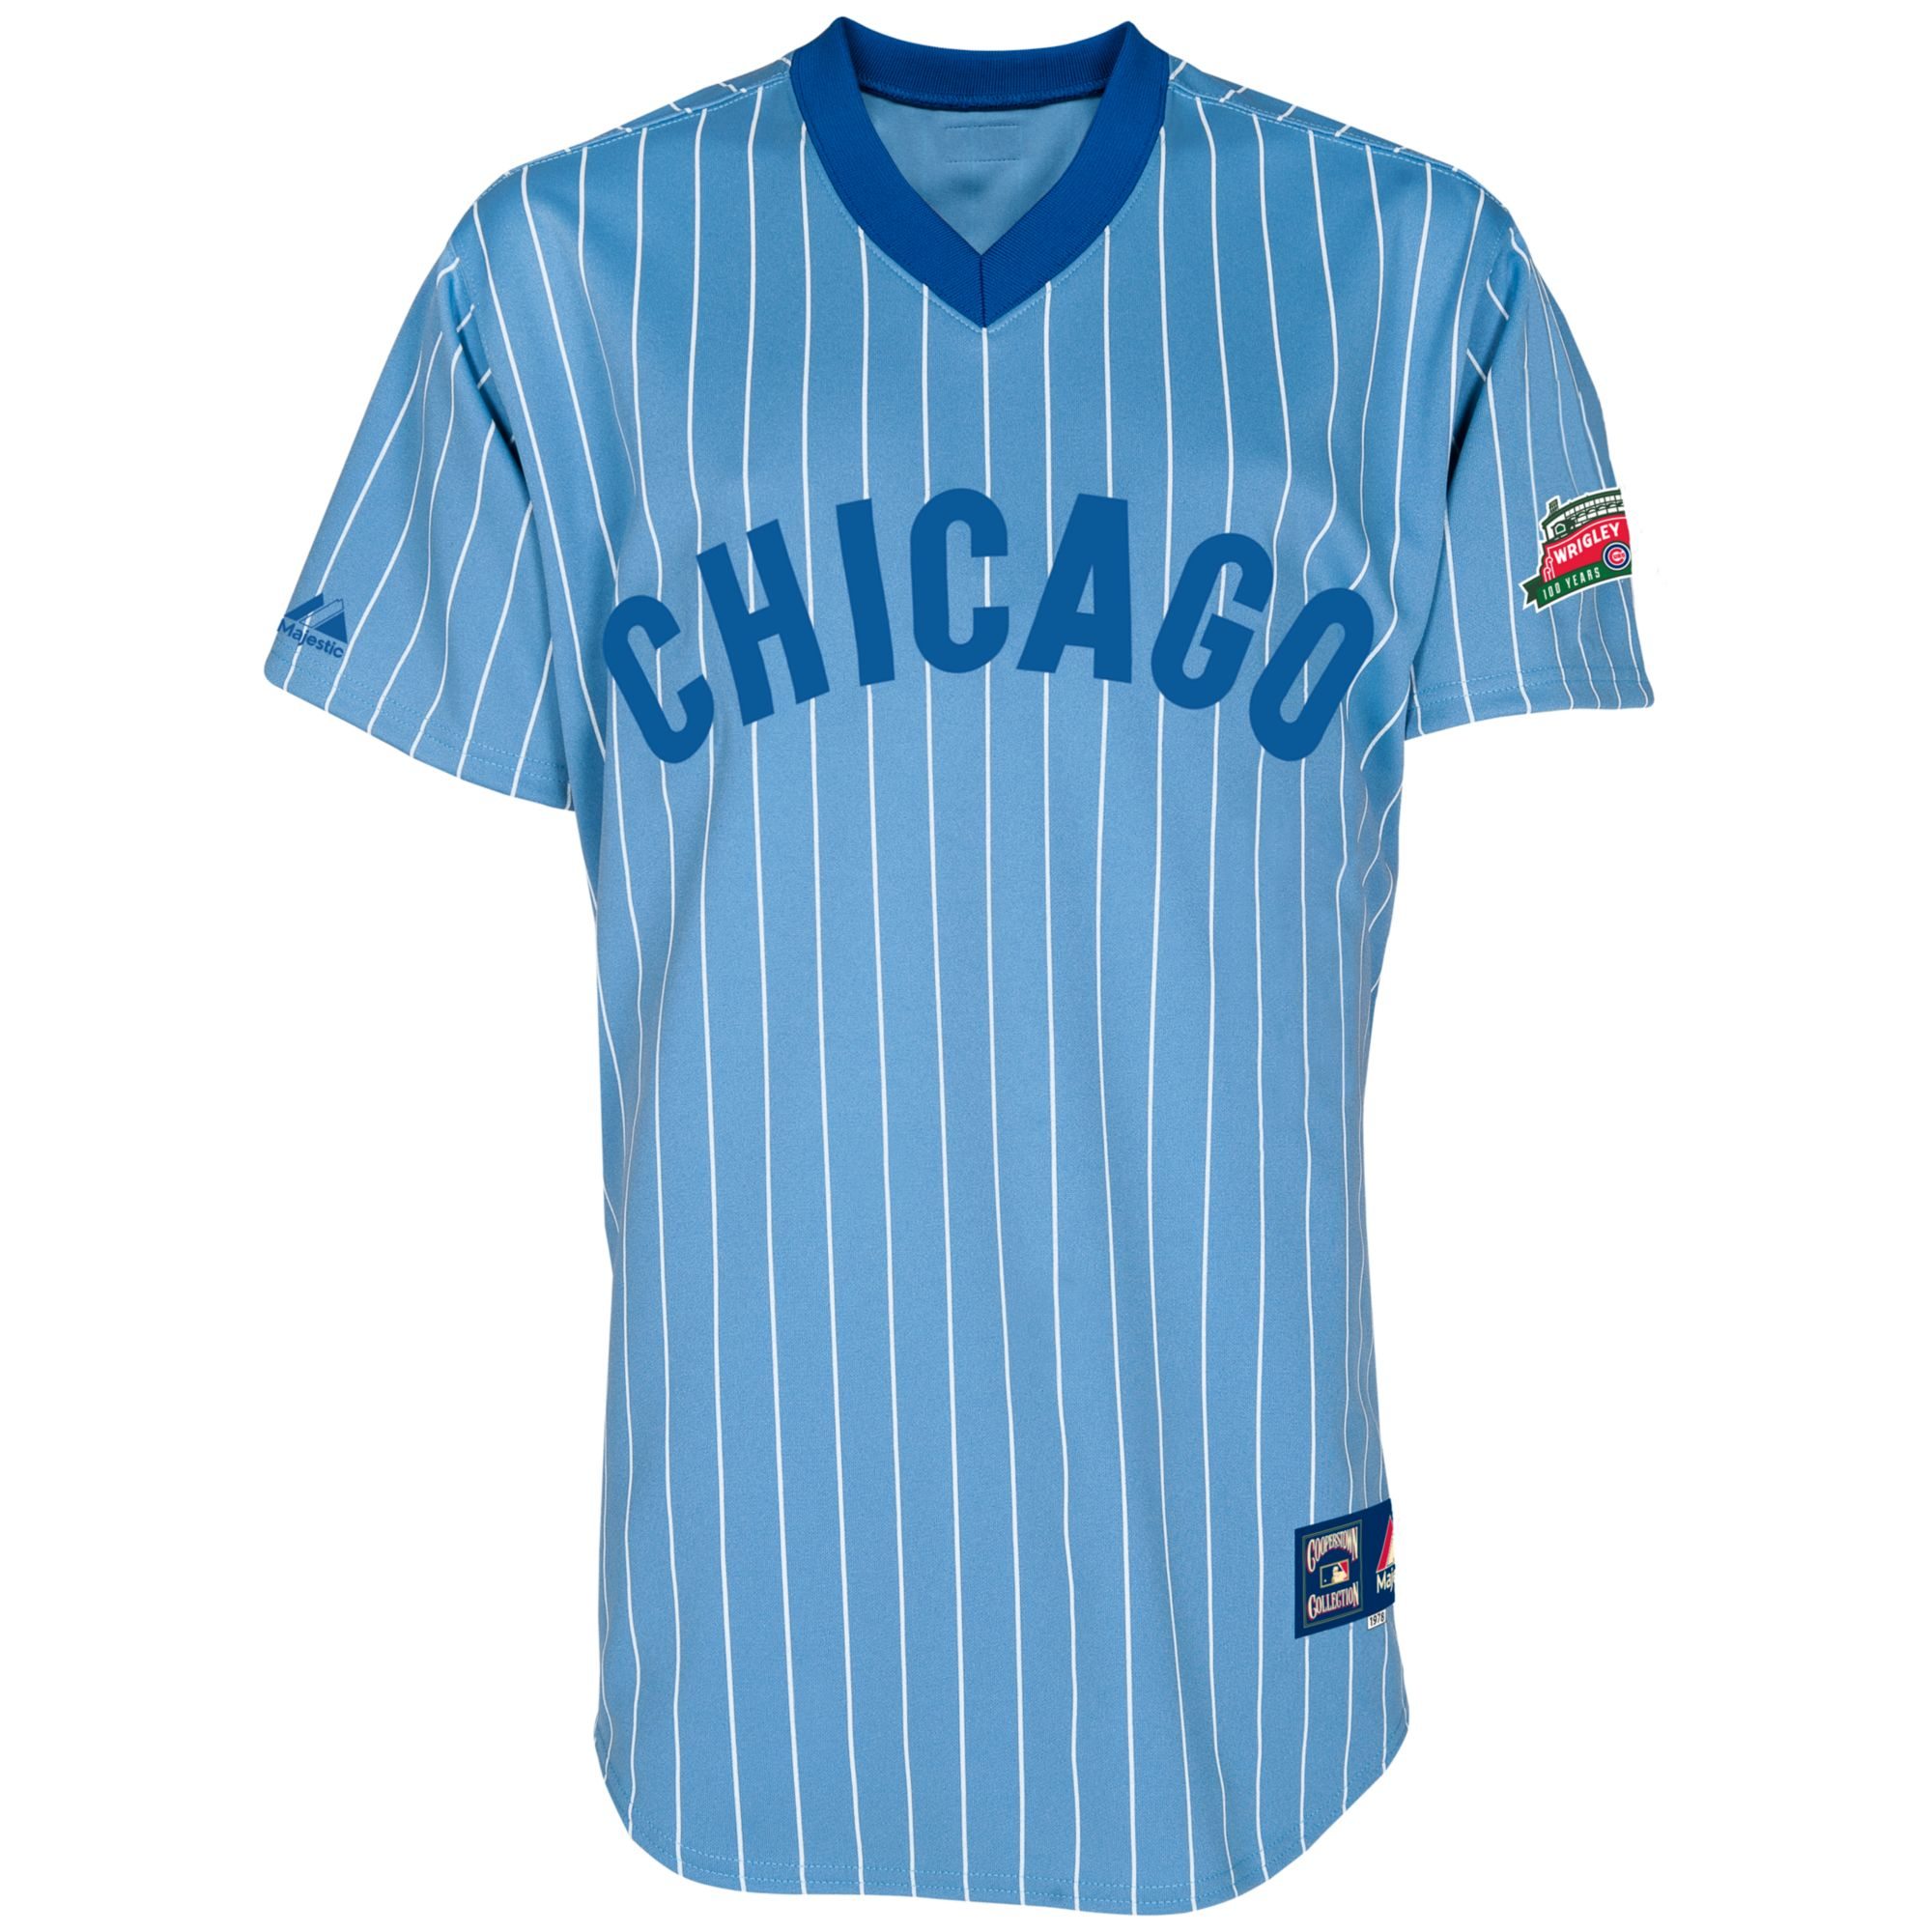 Majestic Chicago Cubs Replica Throw Back Jersey In Blue